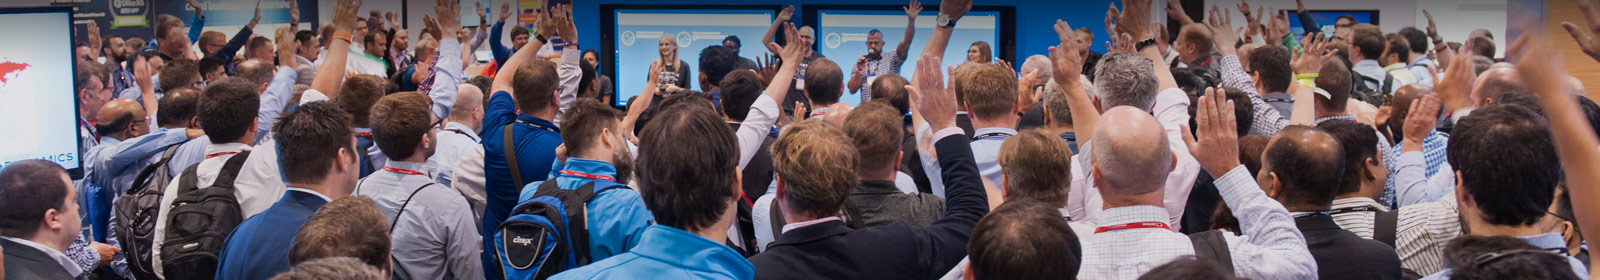 Audience members raise their hands during a session at a previous WPC event